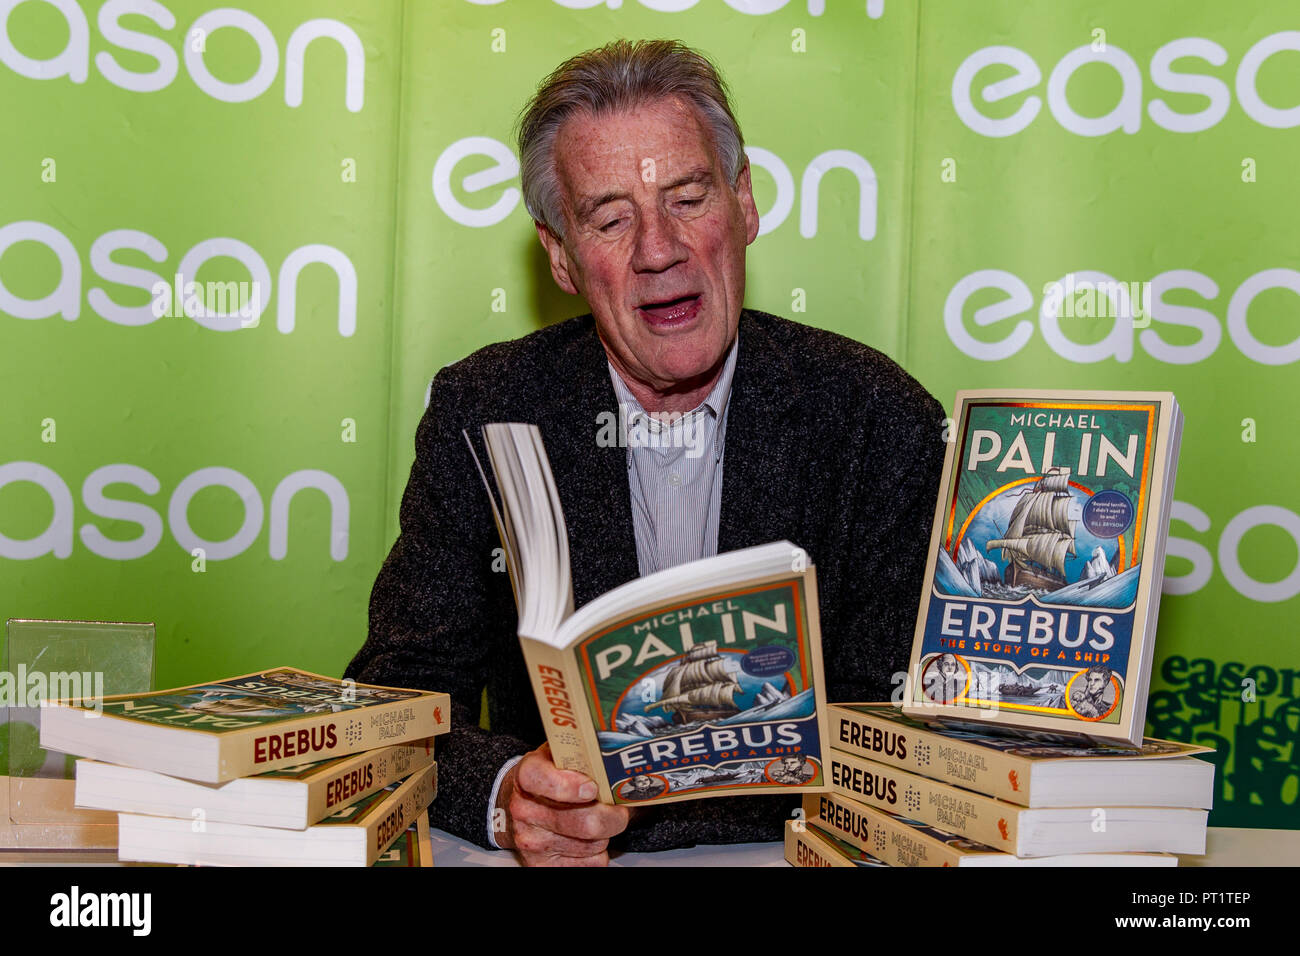 Page 3 Michael Palin Monty Python High Resolution Stock Photography And Images Alamy